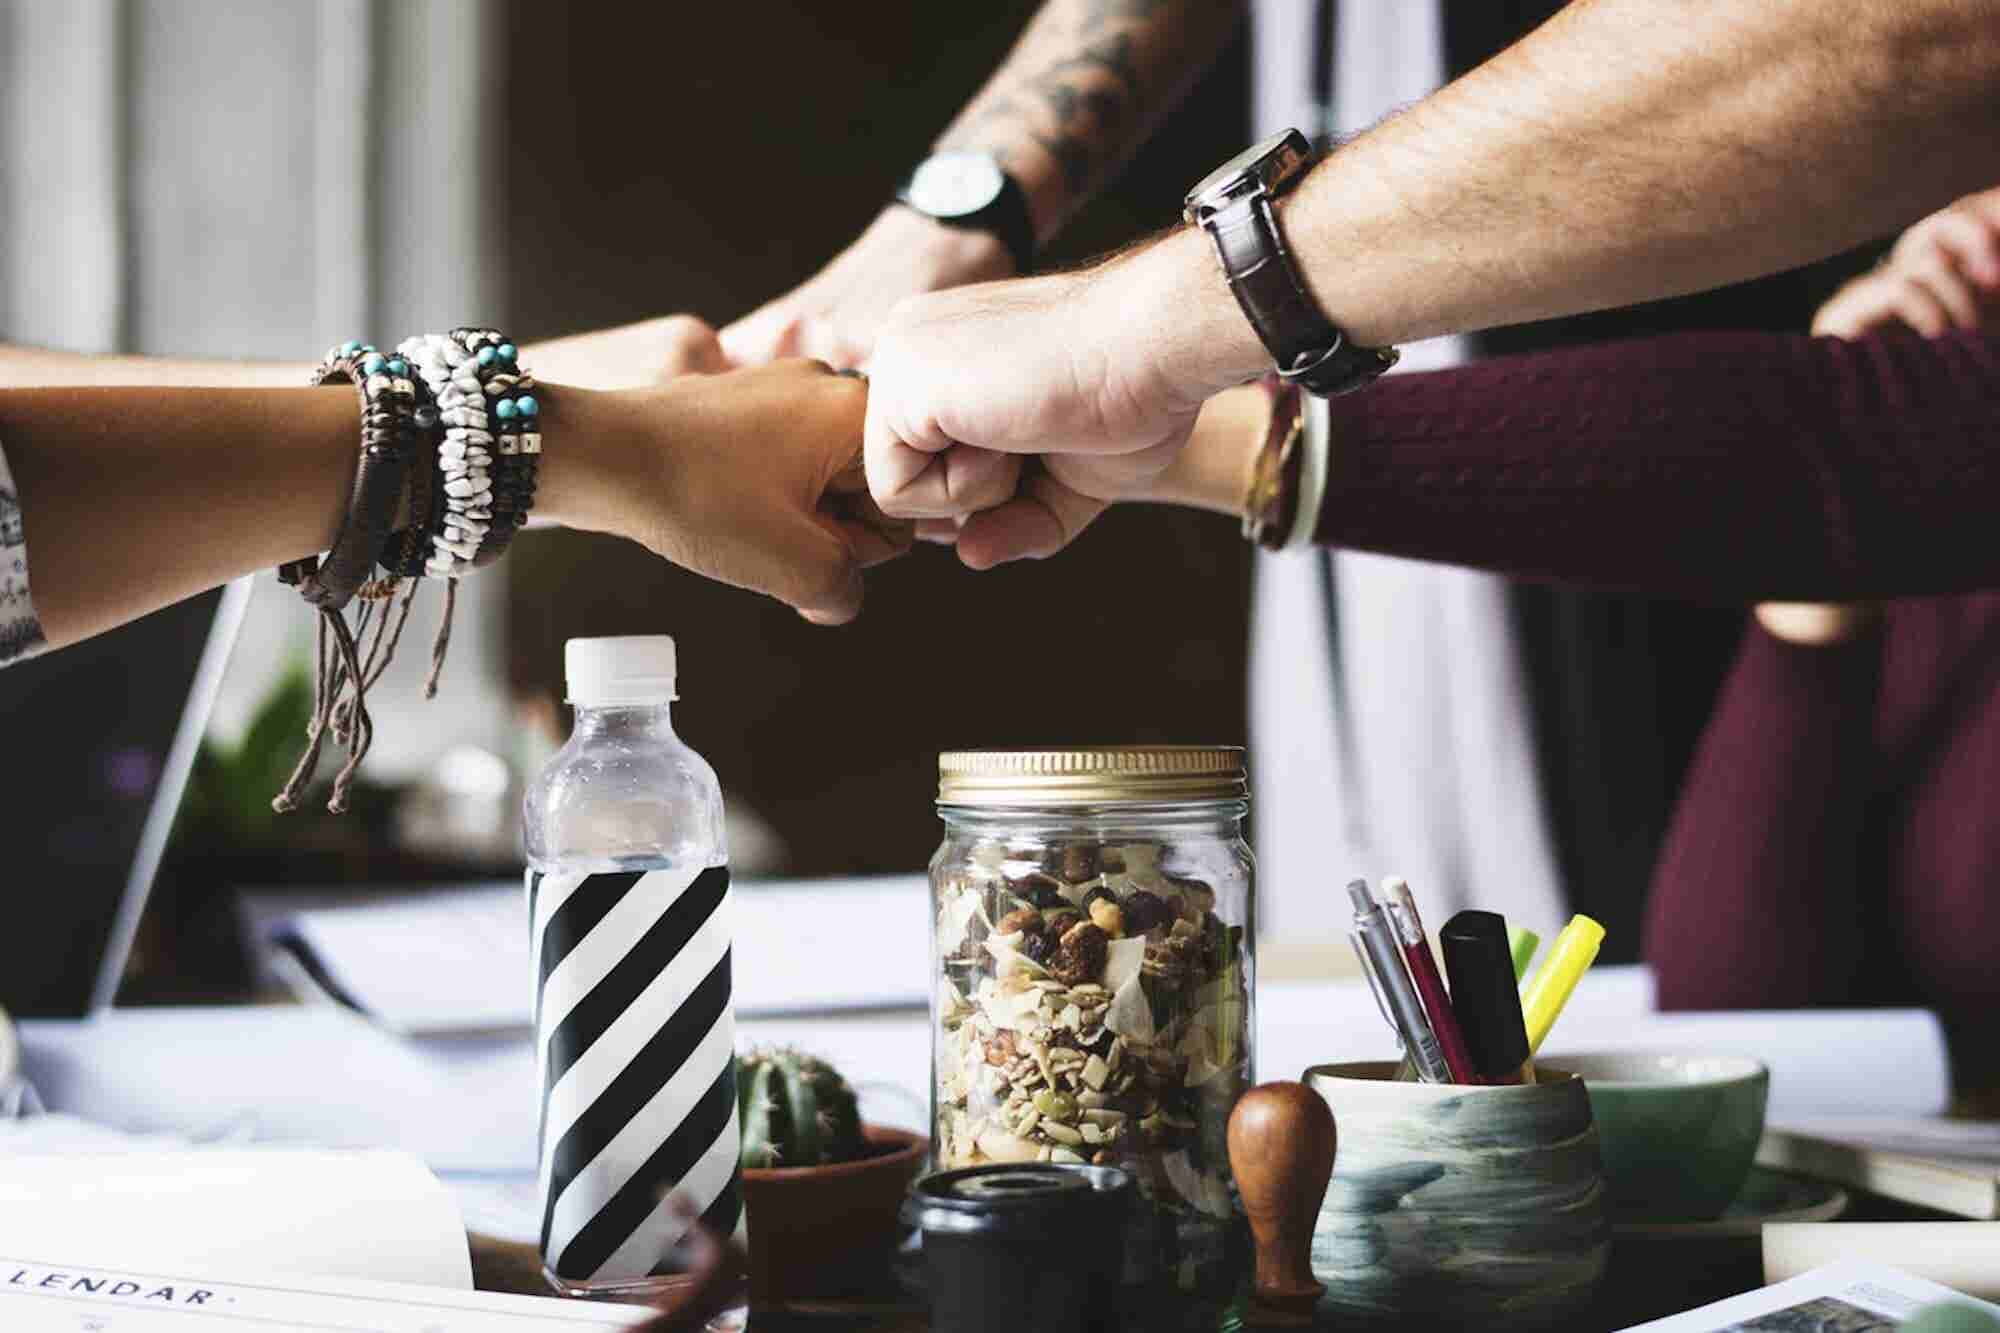 Become a More Effective Leader with Help From a Former Google Team Lead